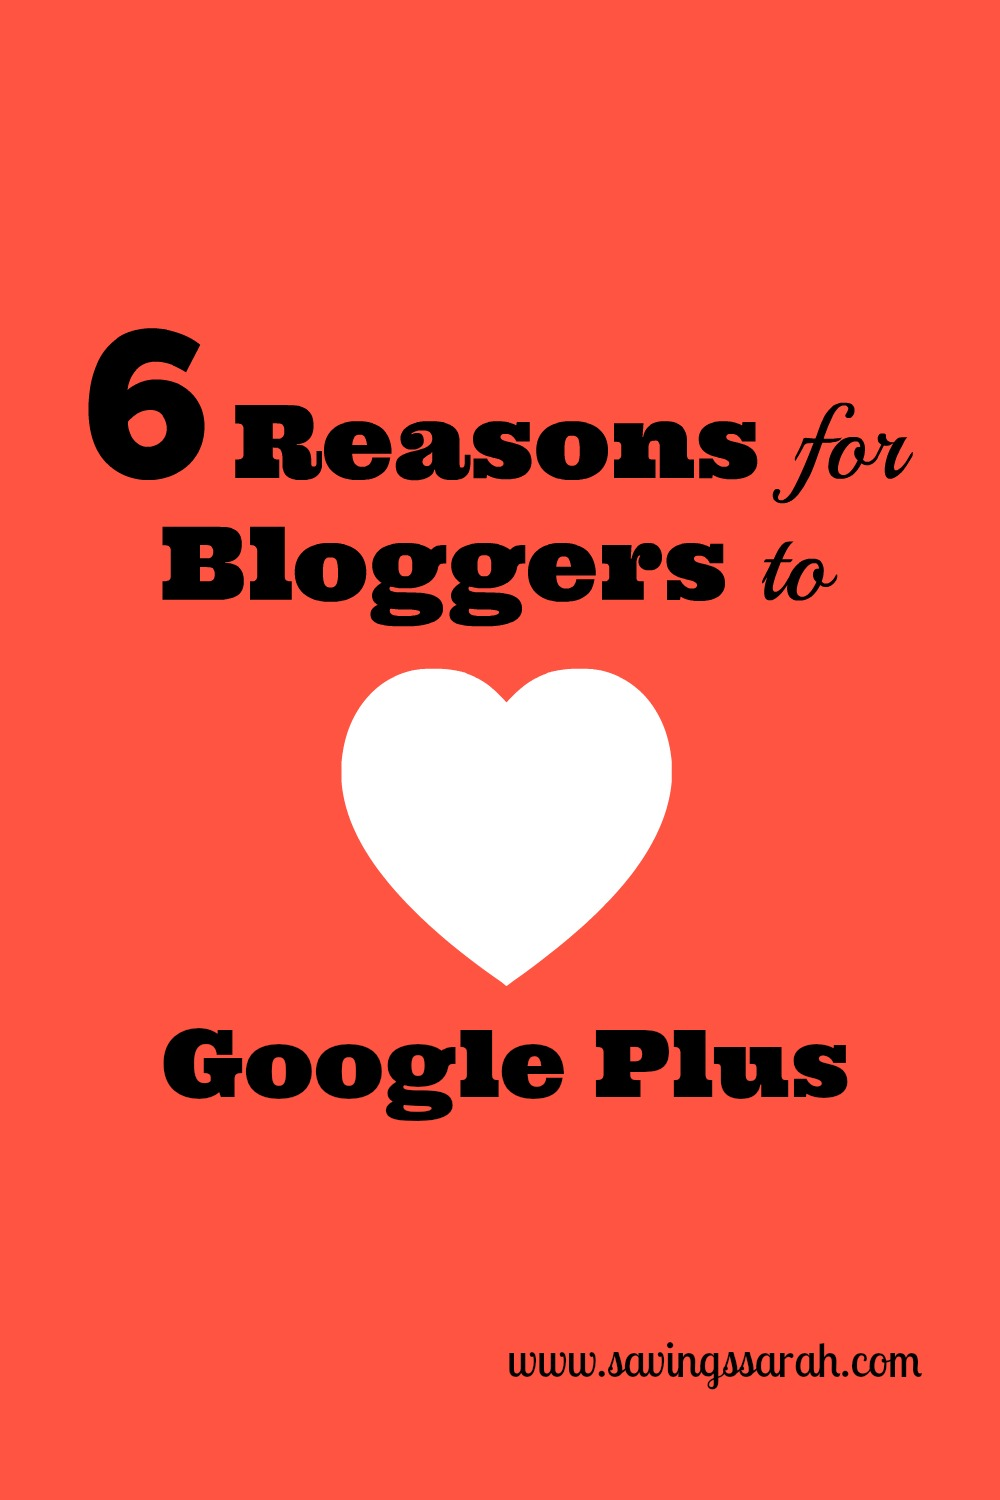 6 Reasons for Bloggers to Love Google Plus